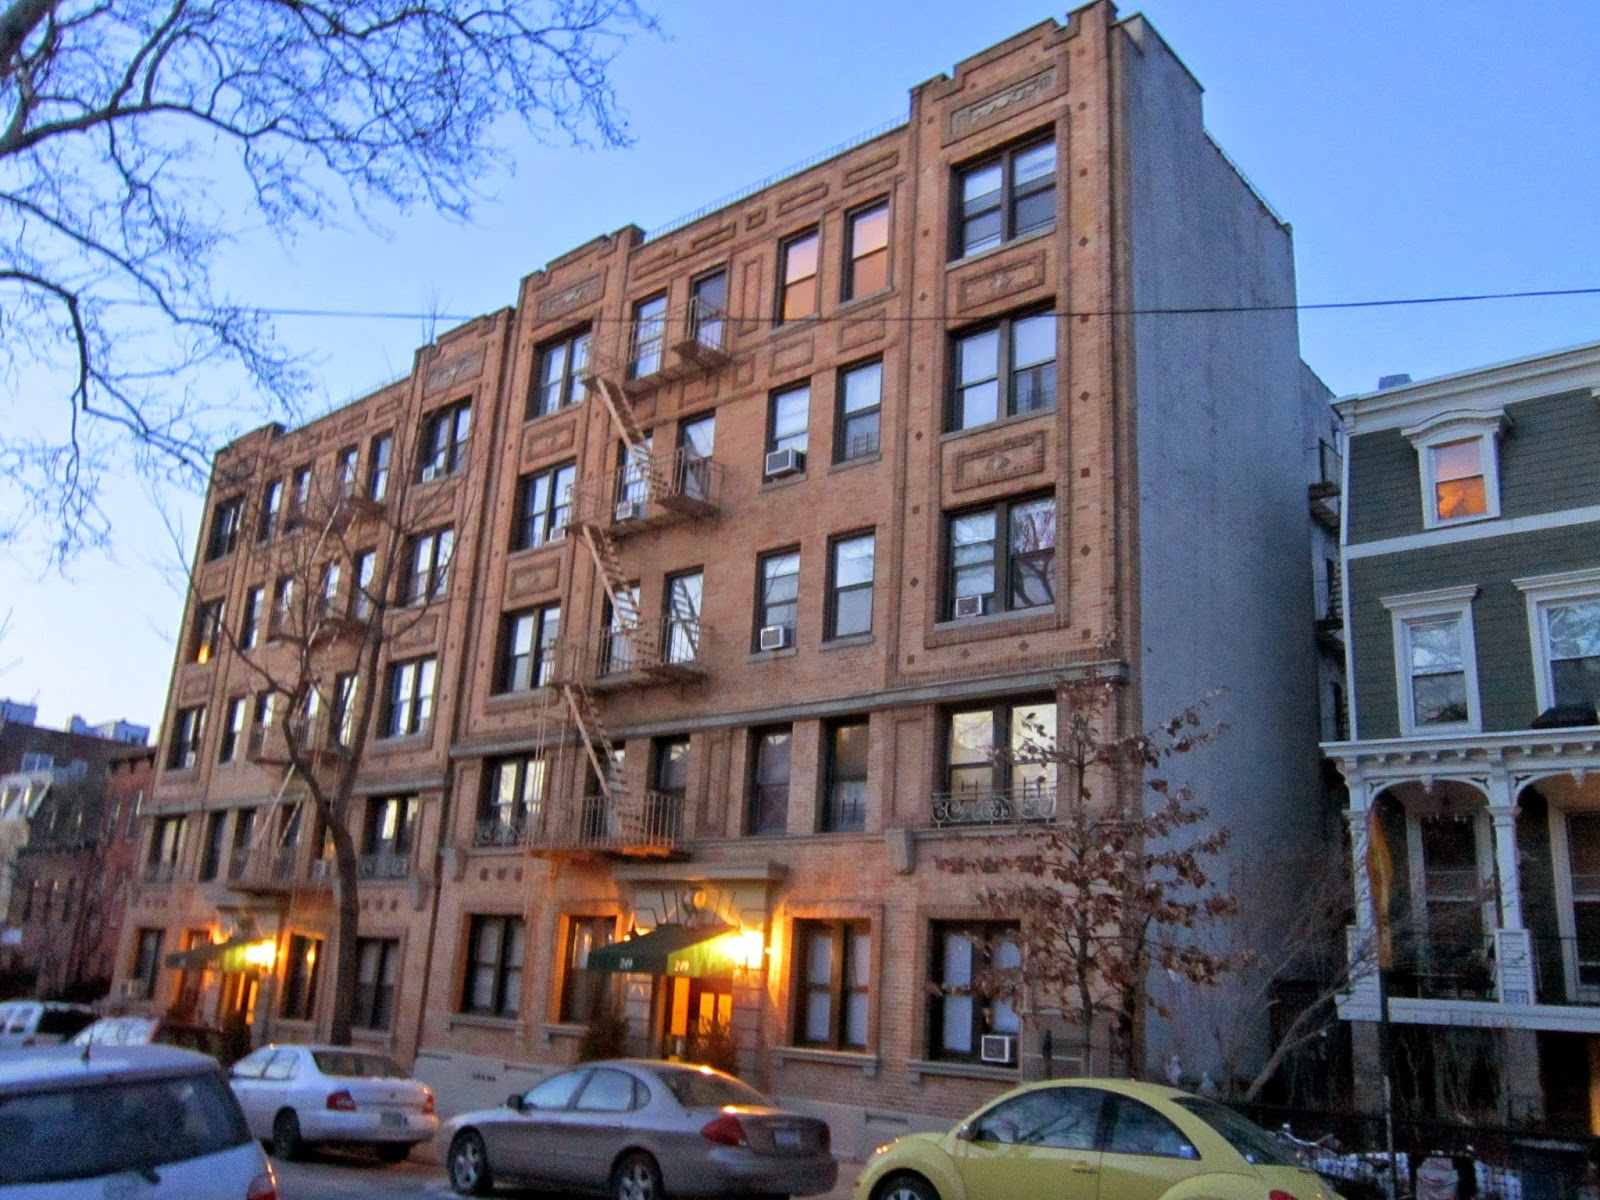 243 13th street 32007 249 13th street 32007 10500000 for the two buildings update sold 22015 17645422